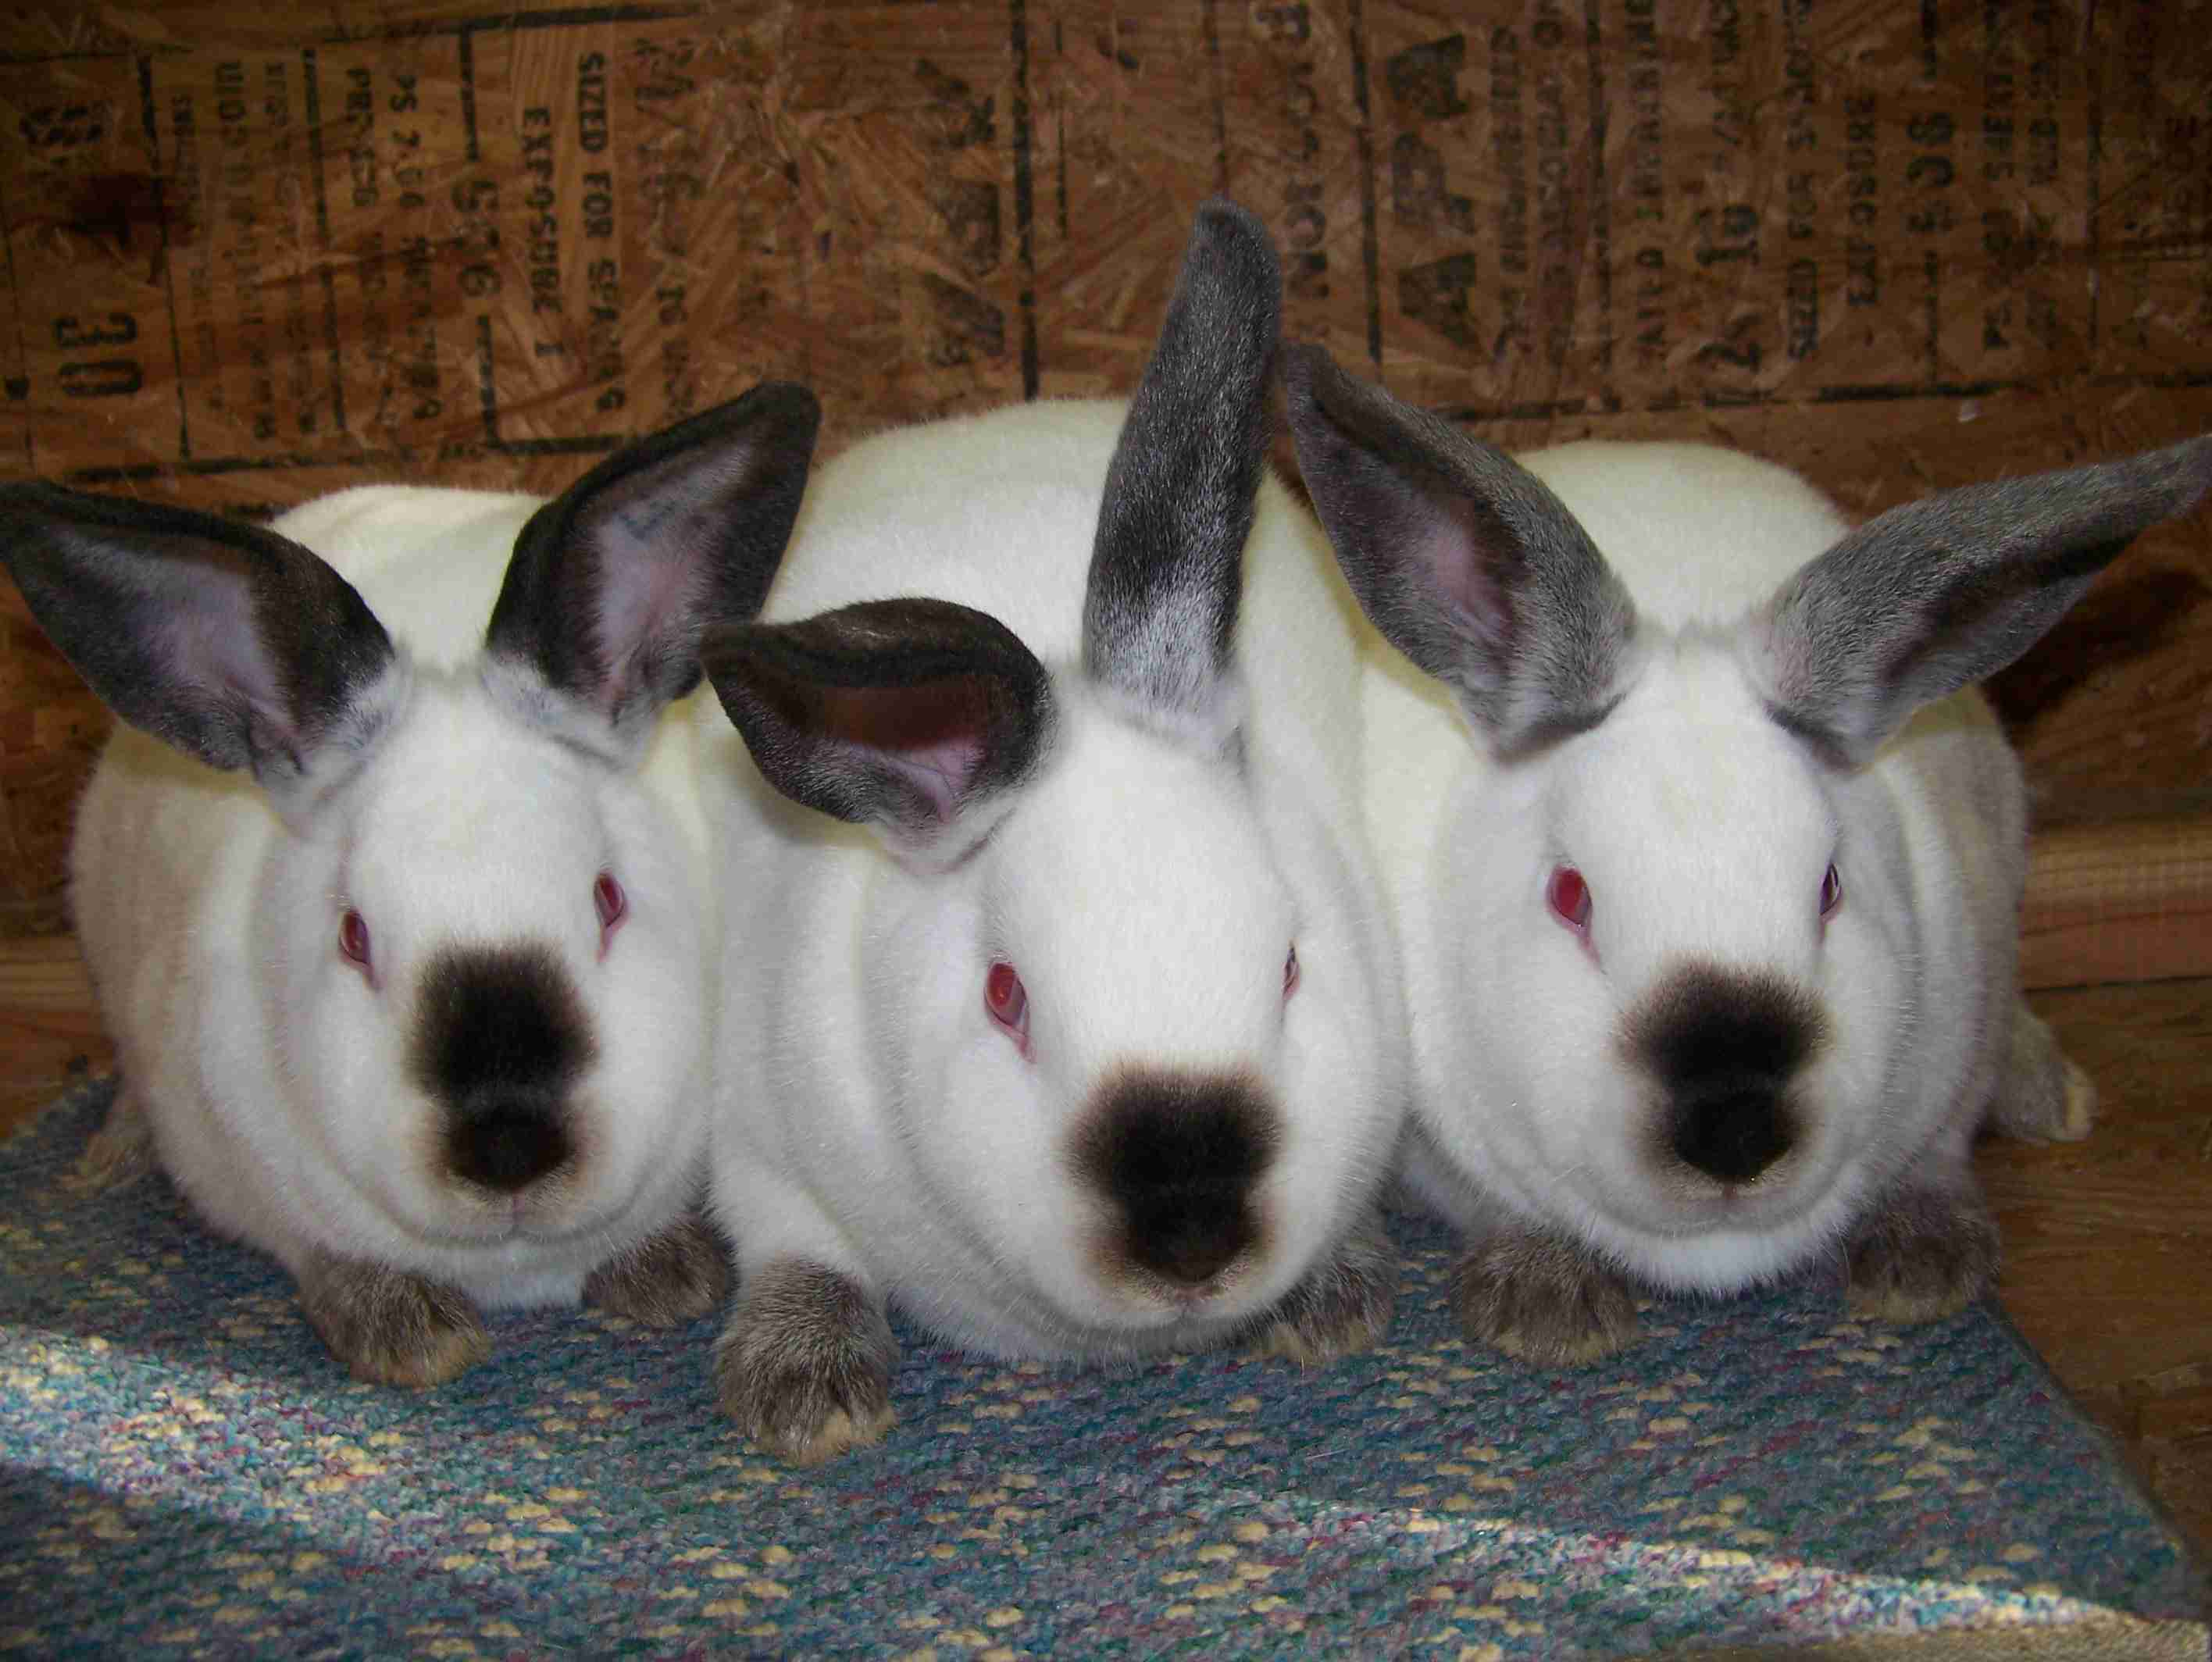 Three Californian Rabbits